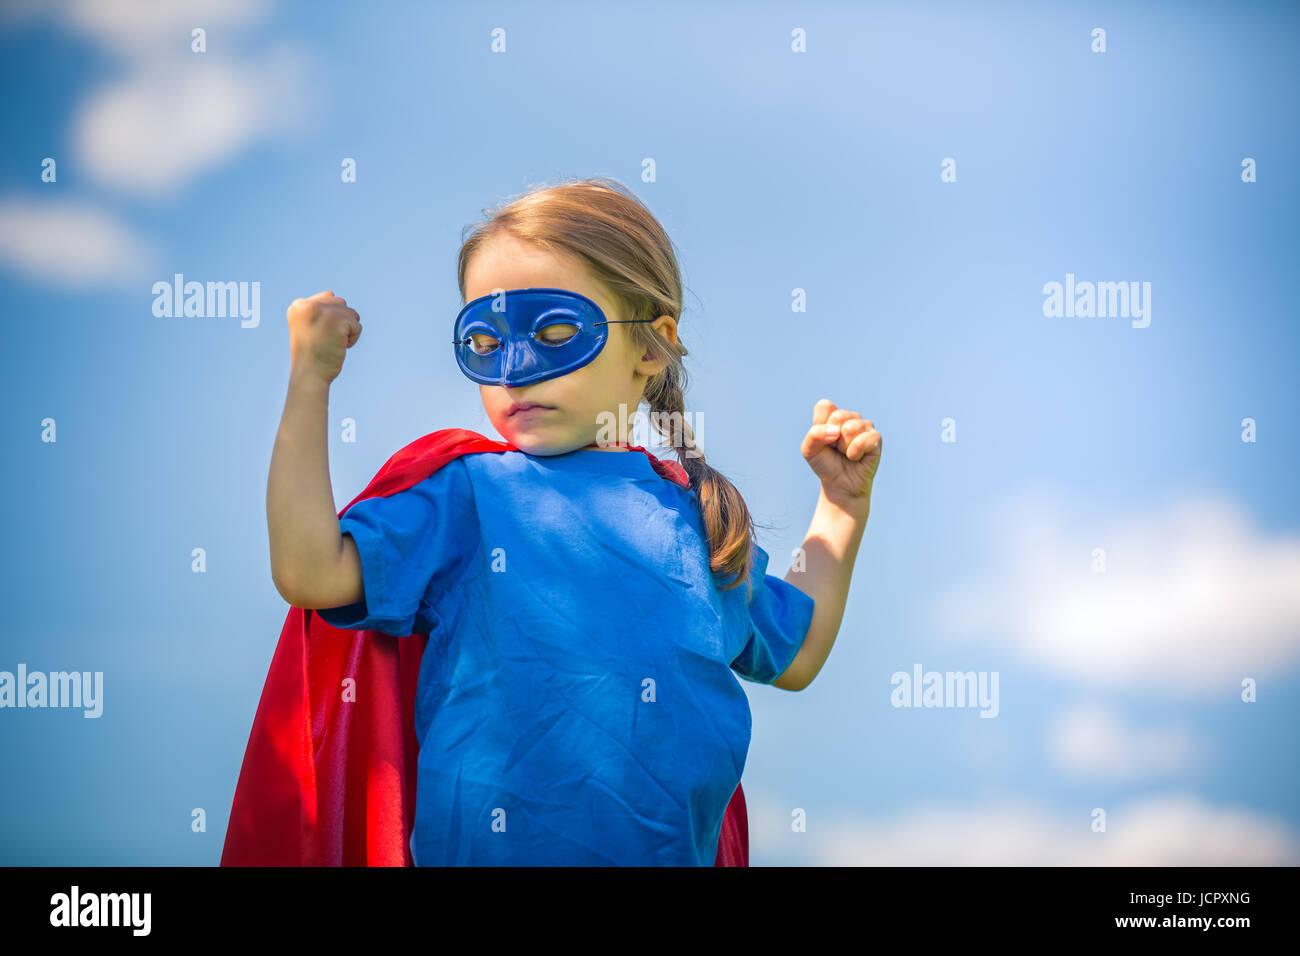 Funny little girl playing power super hero over blue sky background. Superhero concept. - Stock Image